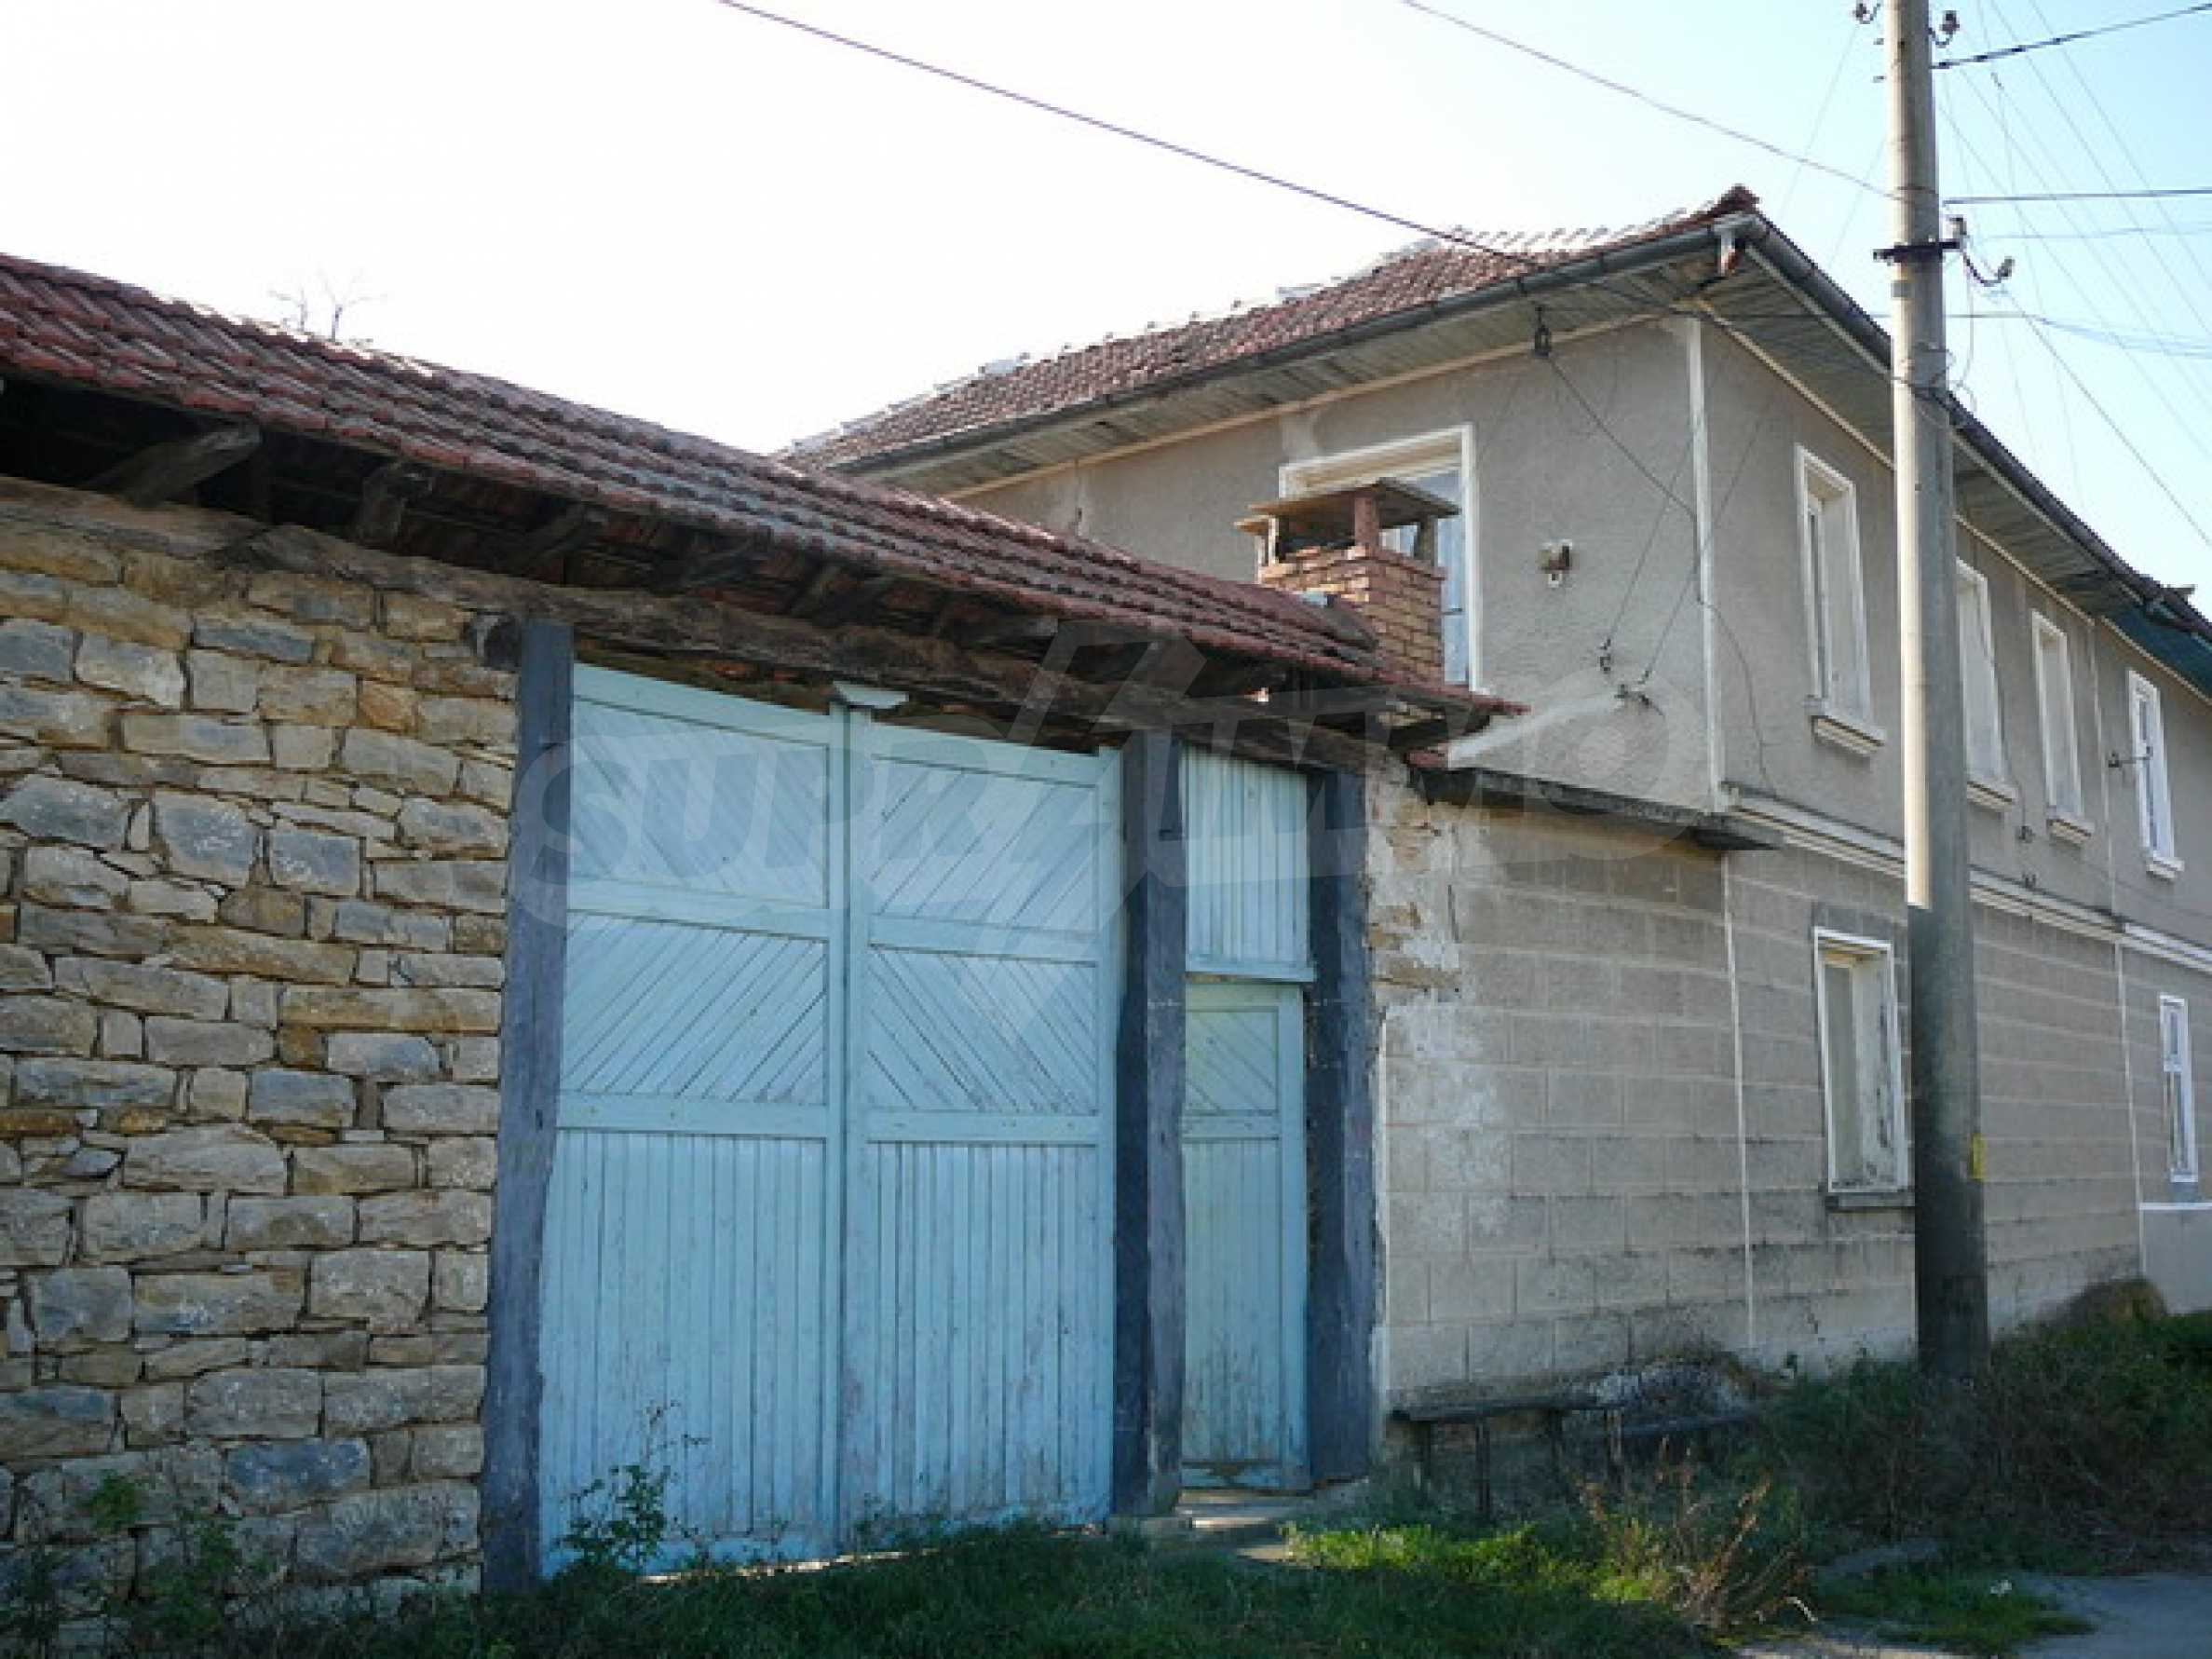 House for sale in a village close to Veliko Tarnovo 48